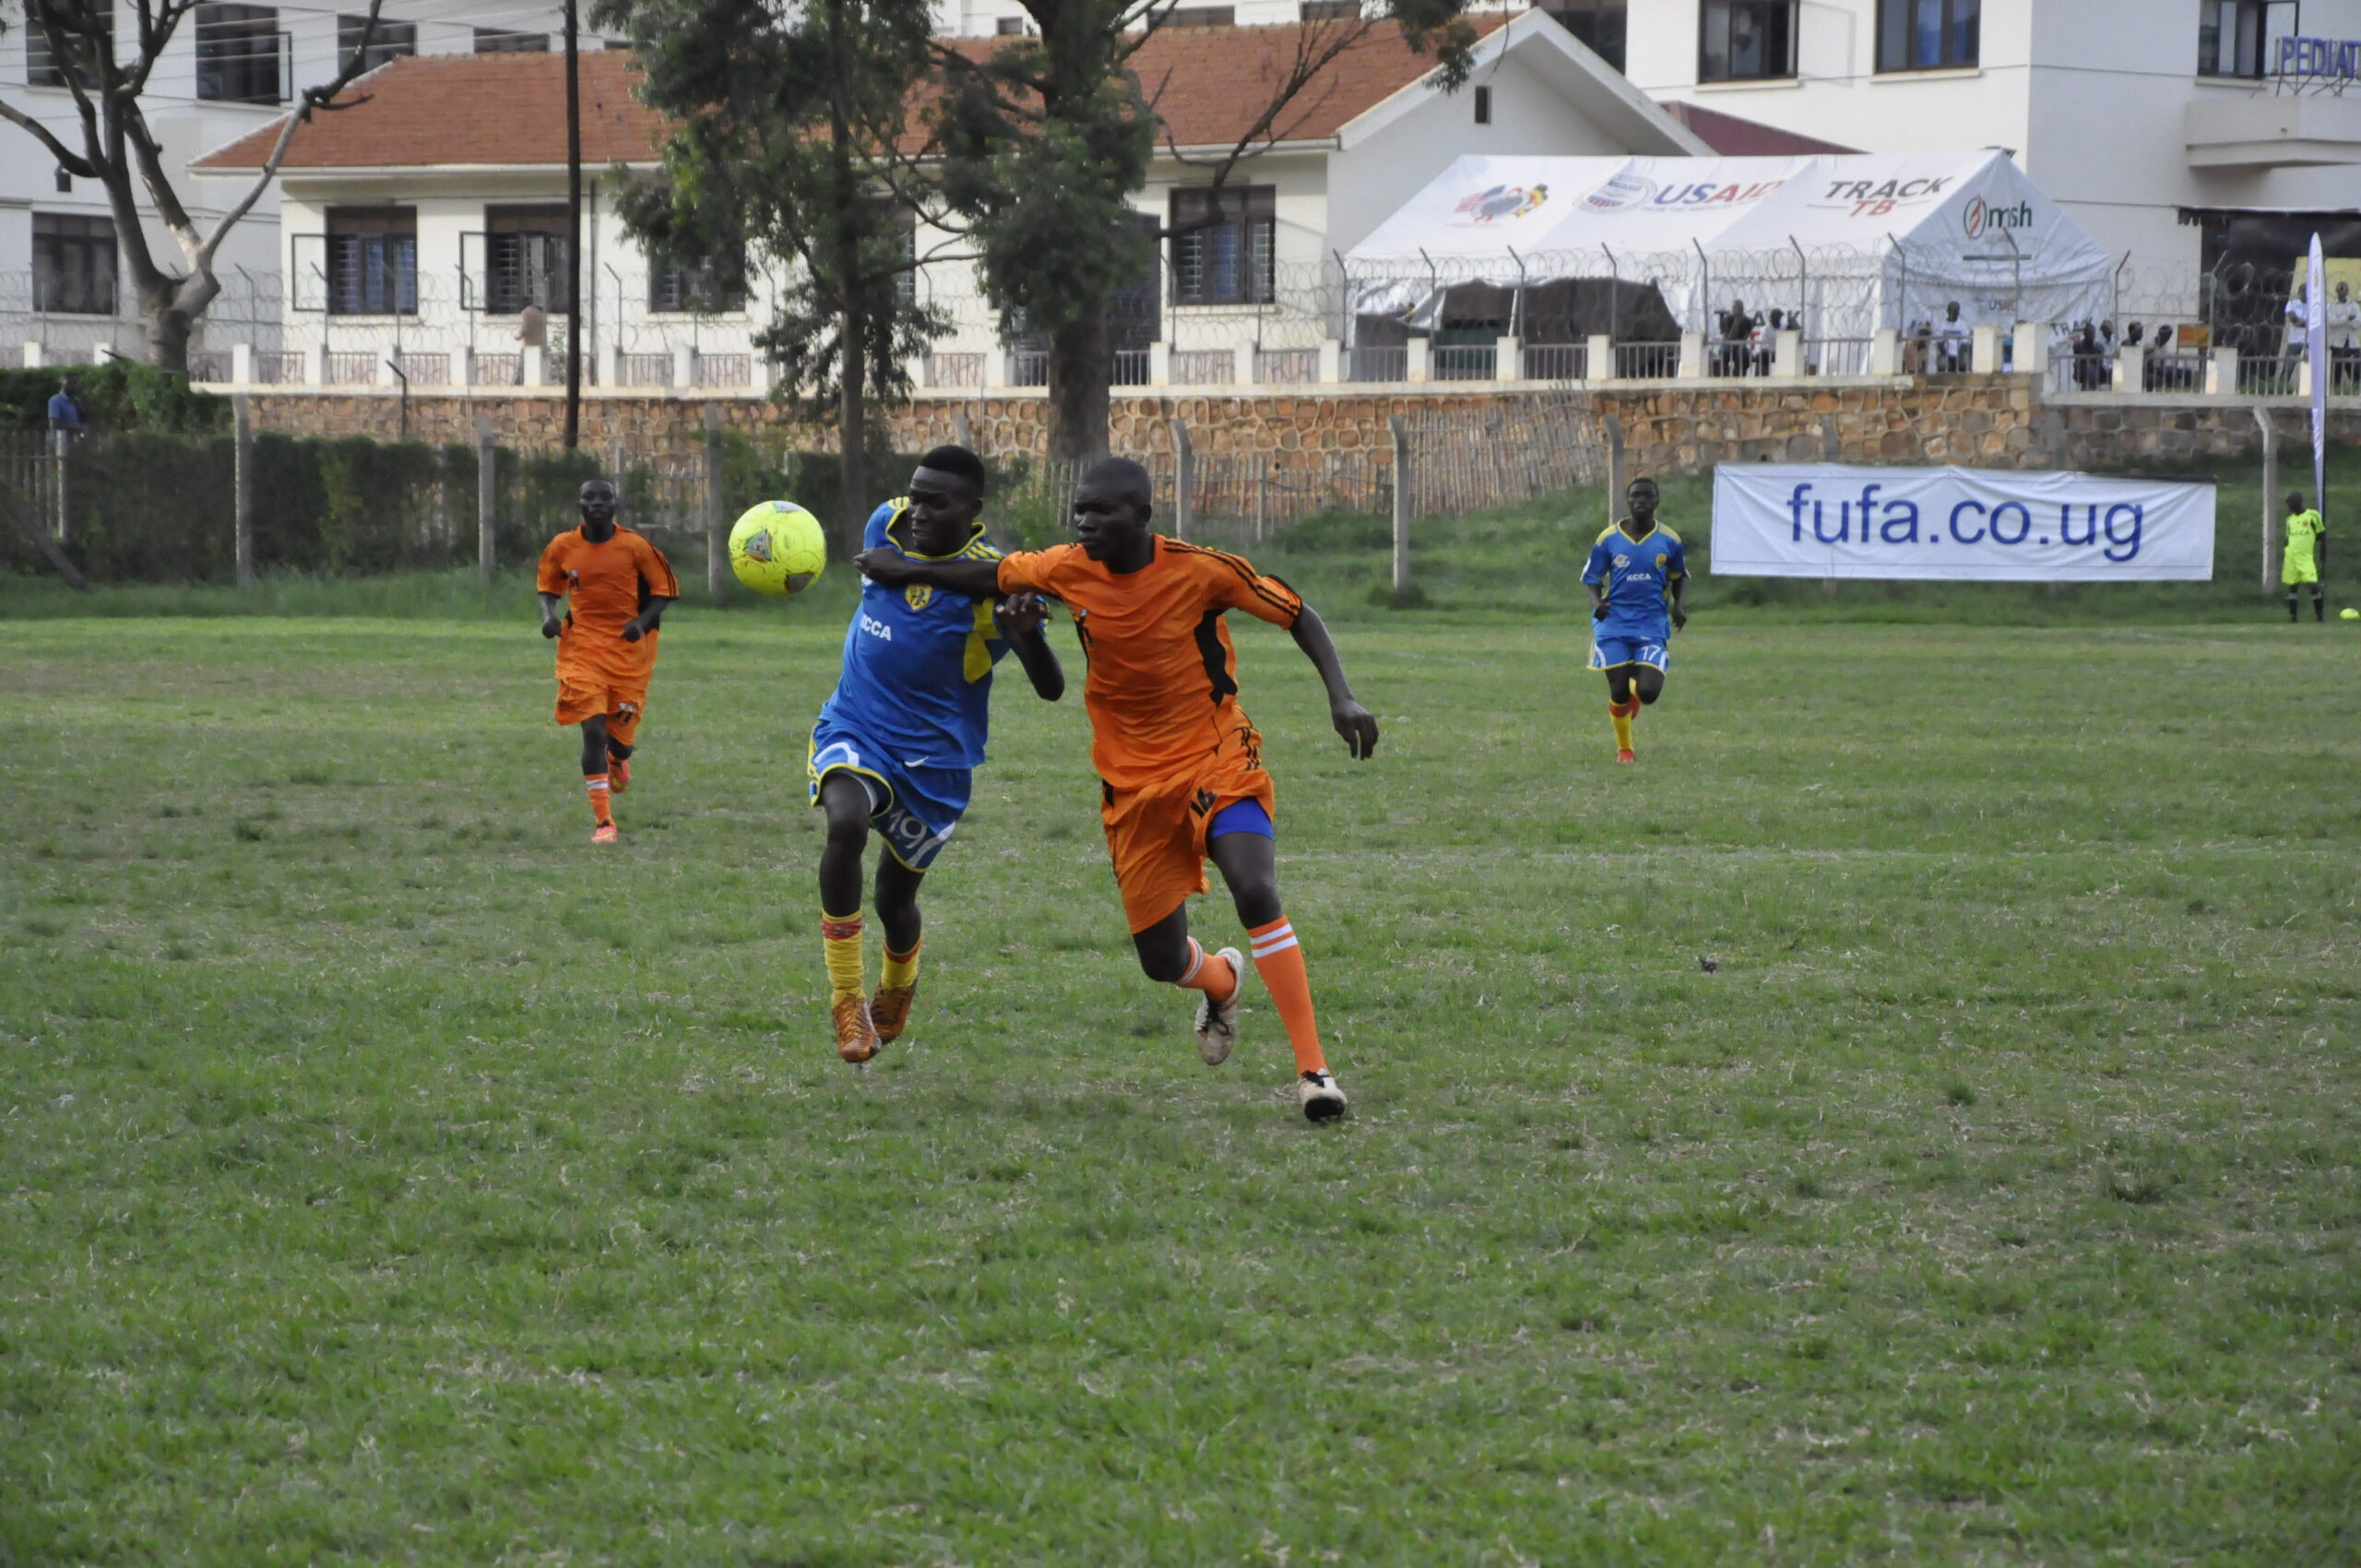 FUFA is Doing Well in Regards to Academy Football, But More Needs to be Done - Newslibre